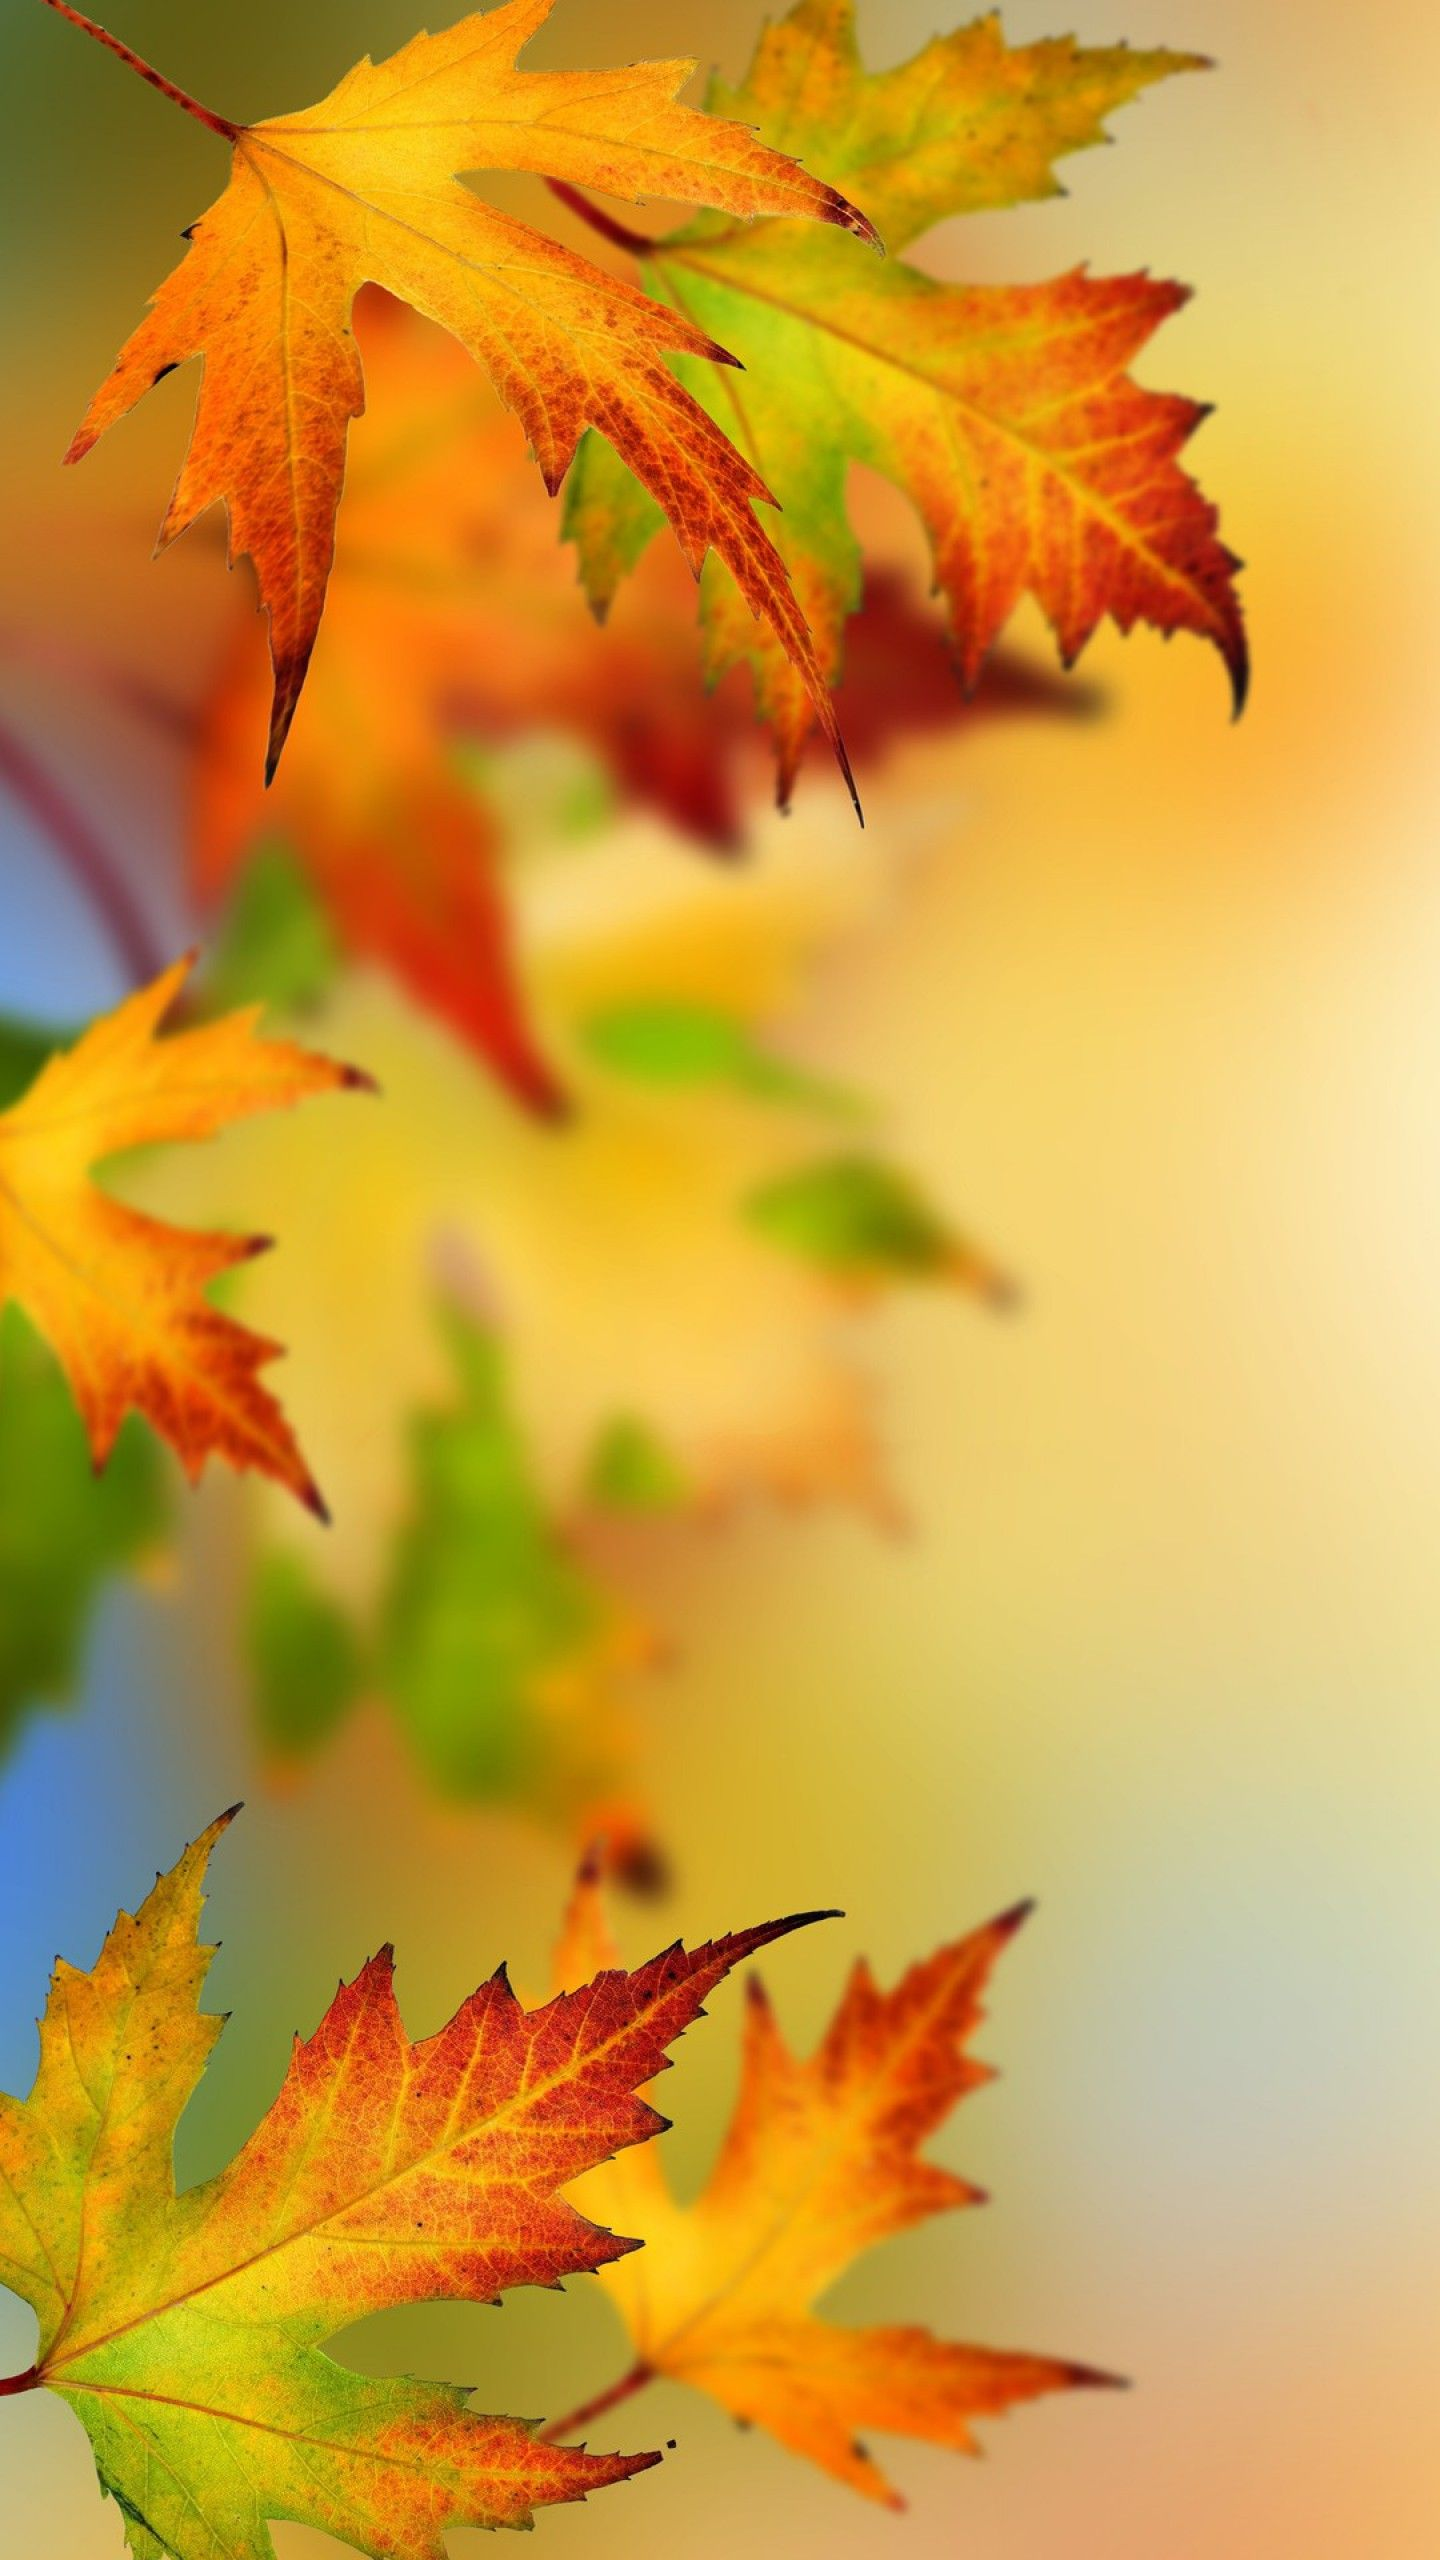 Samsung Galaxy S7 Edge Fall Wallpaper High Resolution Autumn Leaves Picture For Samsung Galaxy